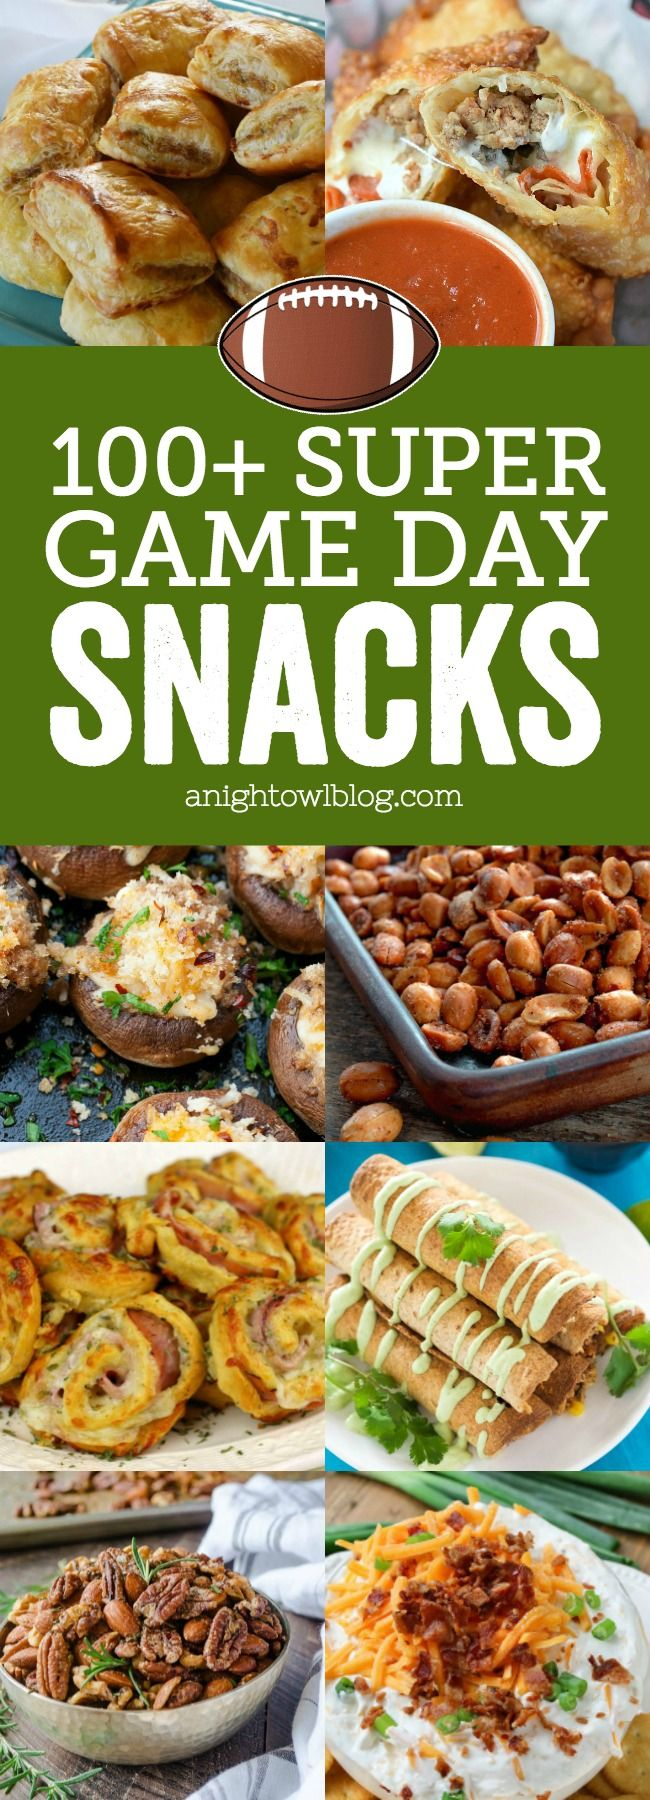 100+ Super Game Day Snacks